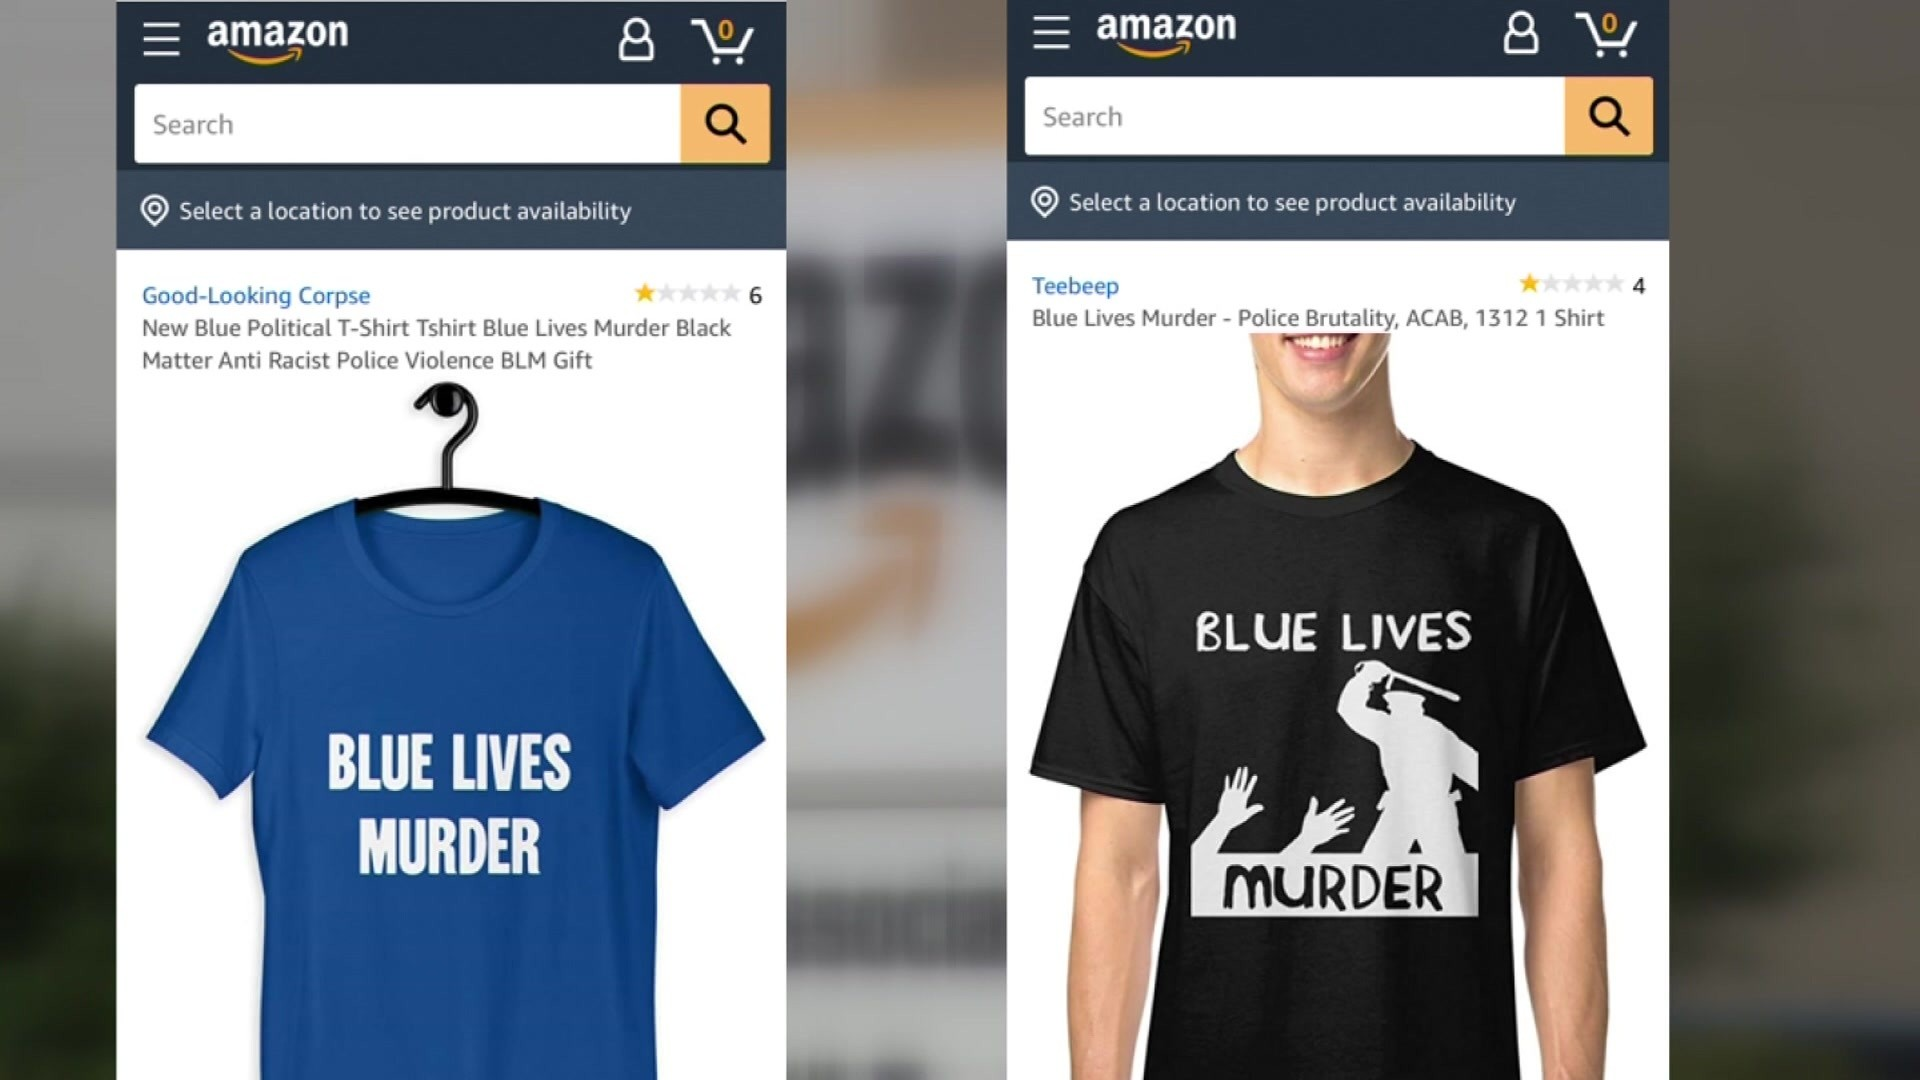 Spring Woman Says Blue Lives Murder Shirts For Sale On Amazon Are Hate Speech Activist Disagrees